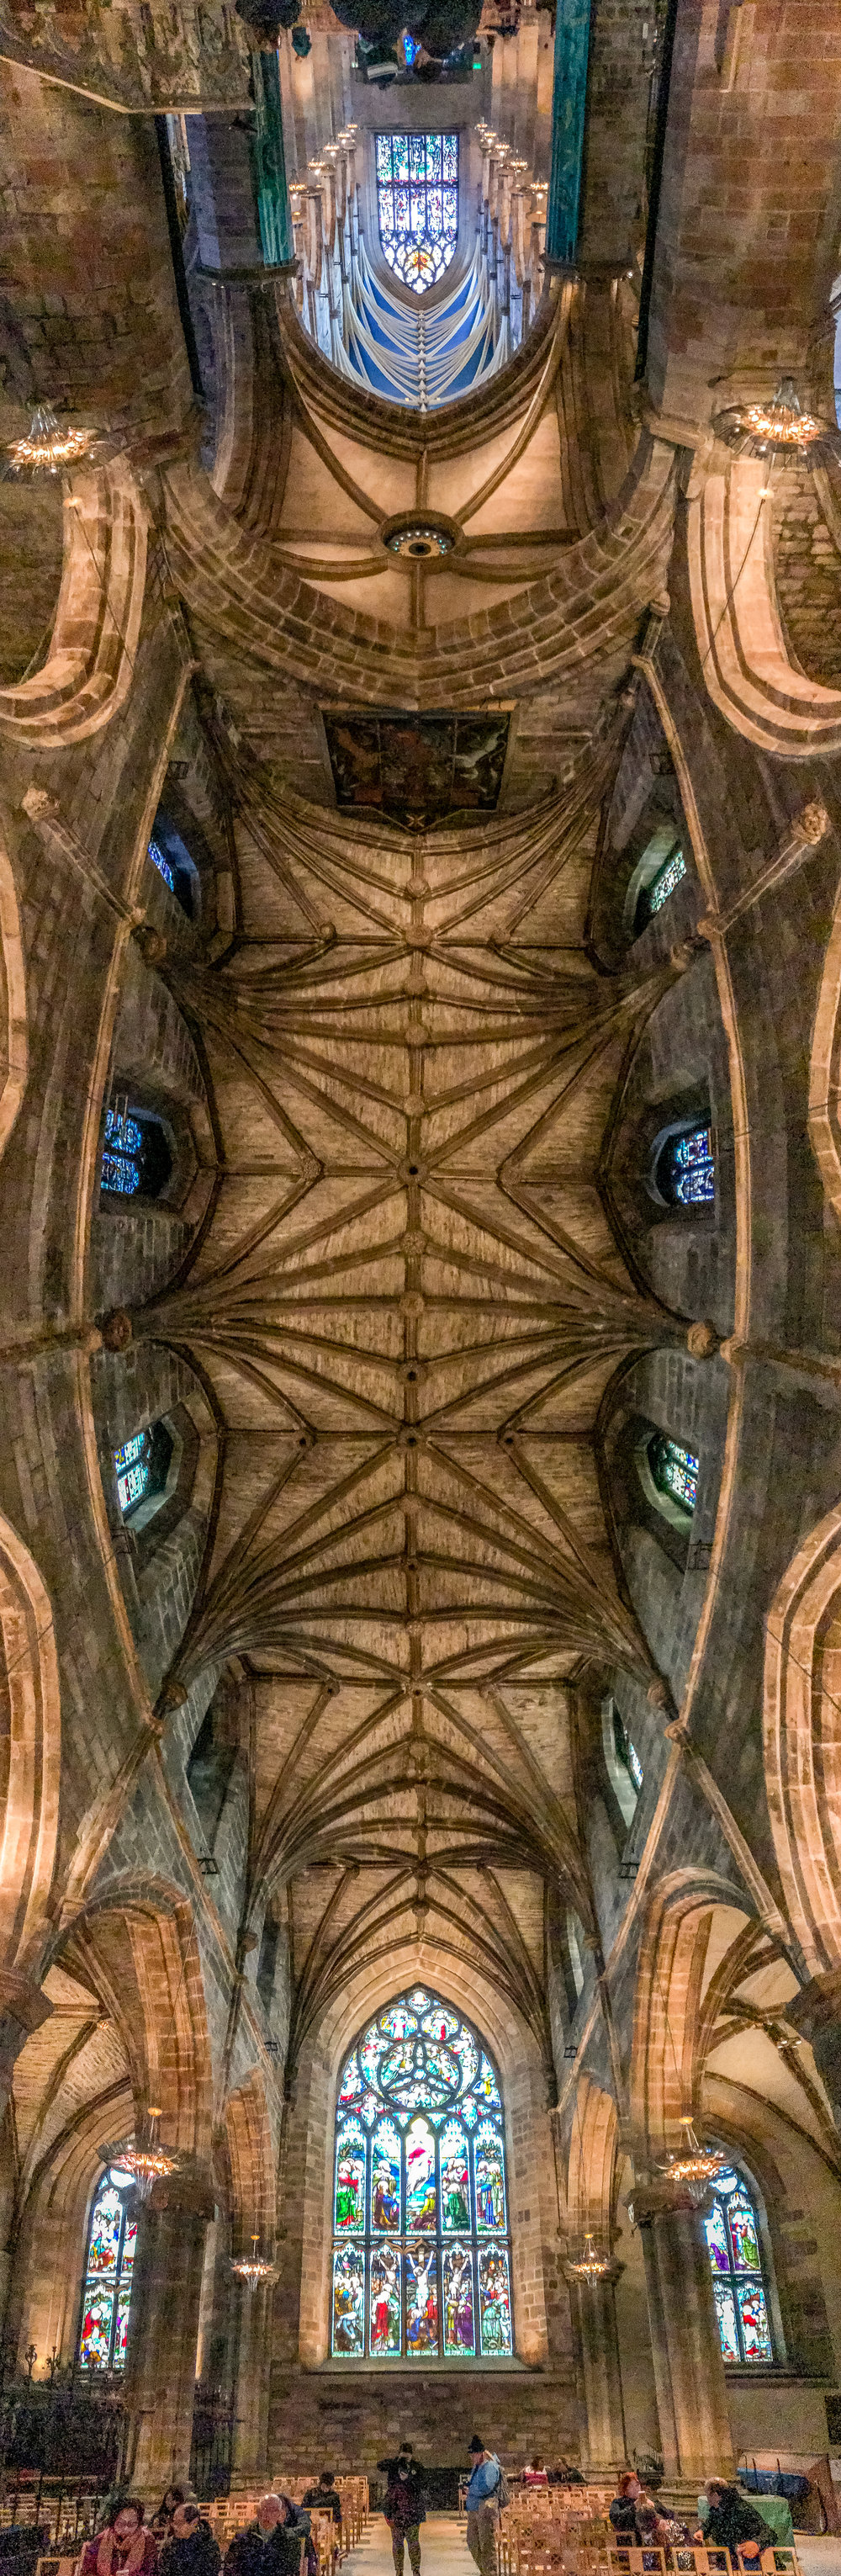 Panorama view of the ceiling of St. Giles Cathedral